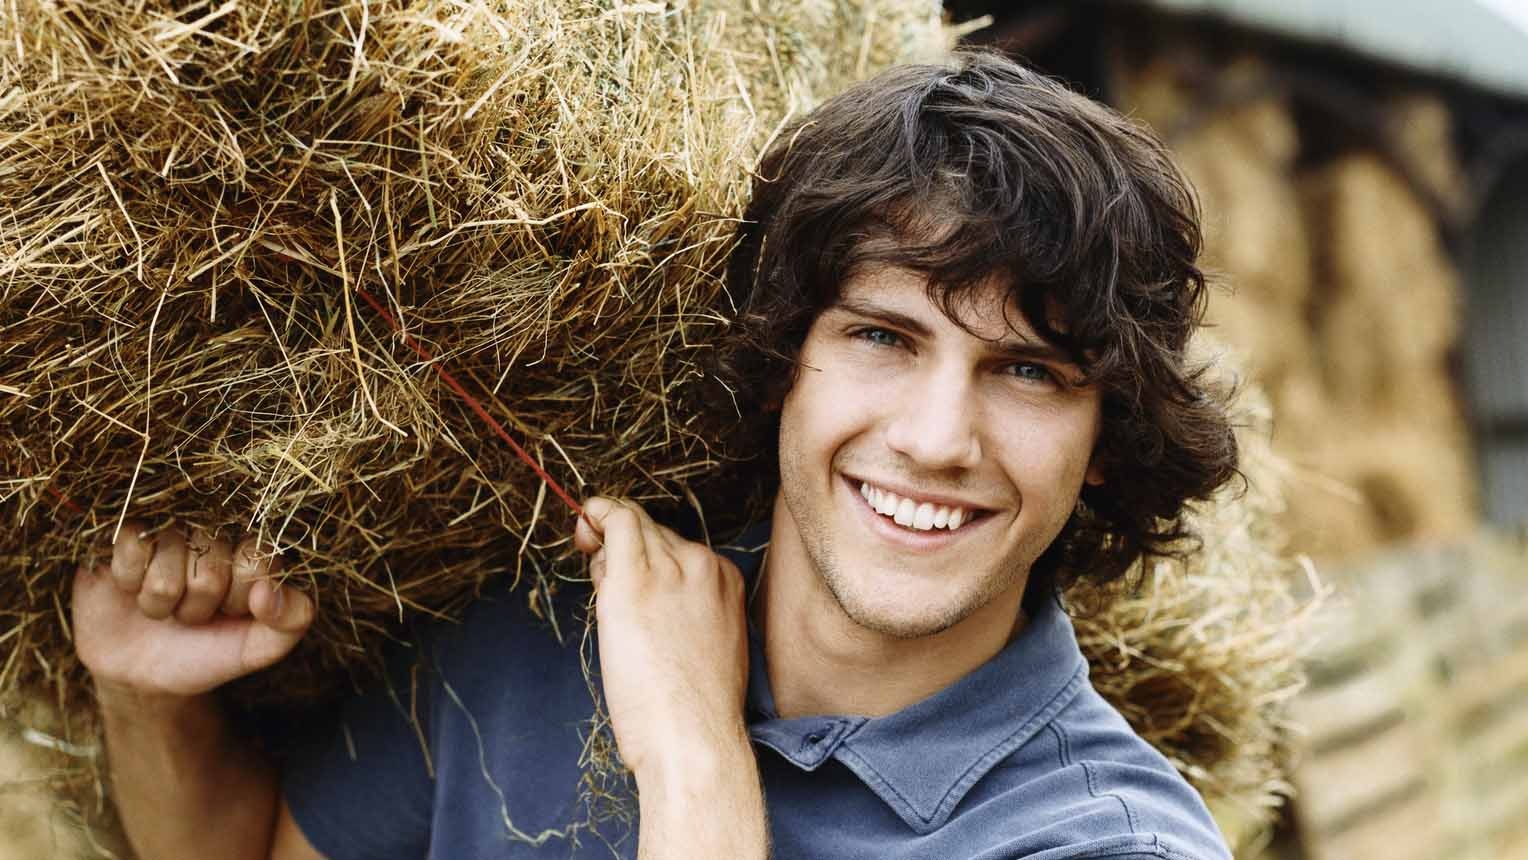 Only 4 per cent of young people consider career in farming